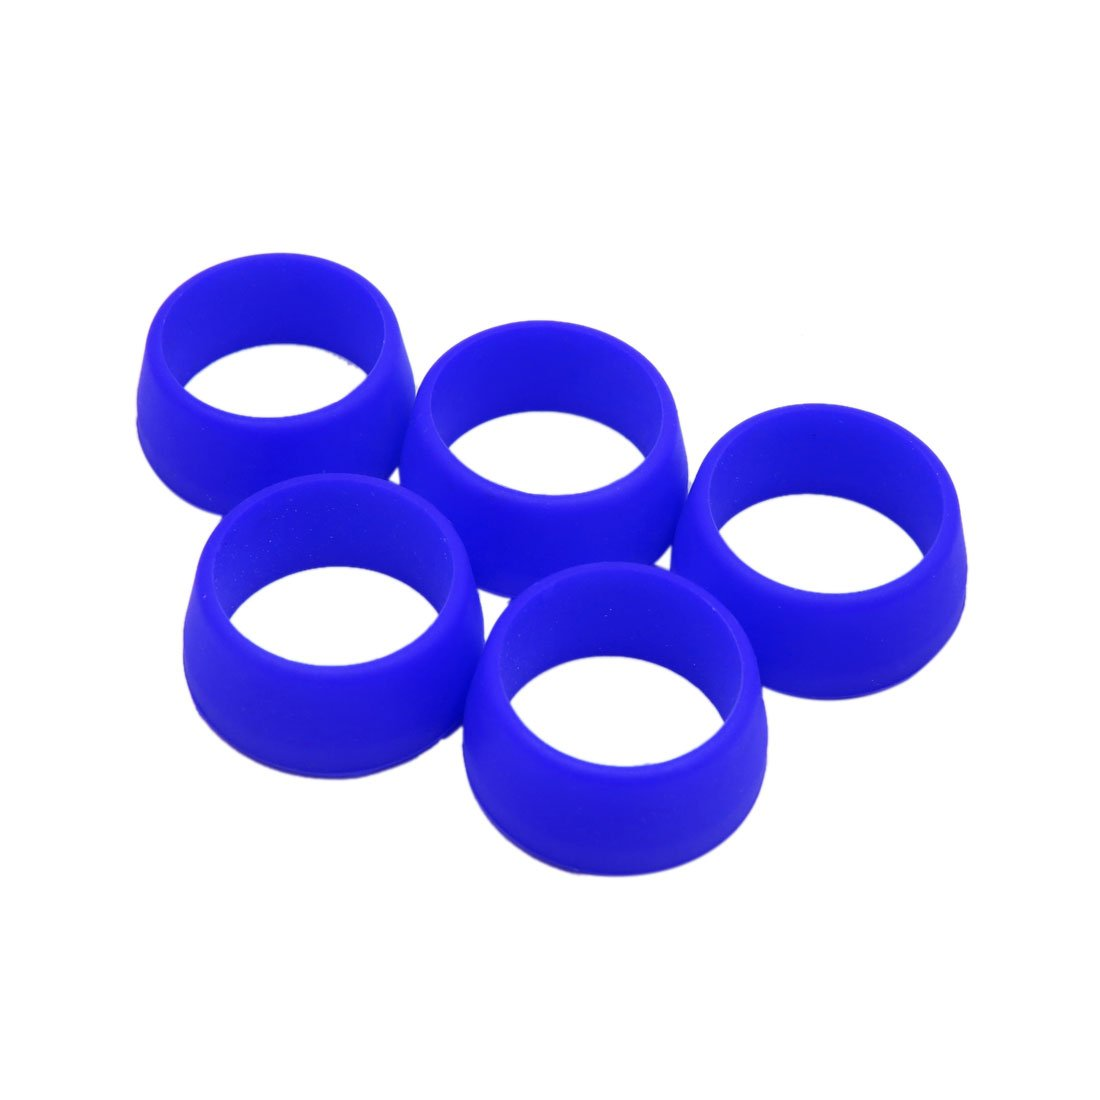 uxcell® 5Pcs 25-30mm Waterproof Silicone Ring Bike Bicycle Seat Post Dust Cover Blue